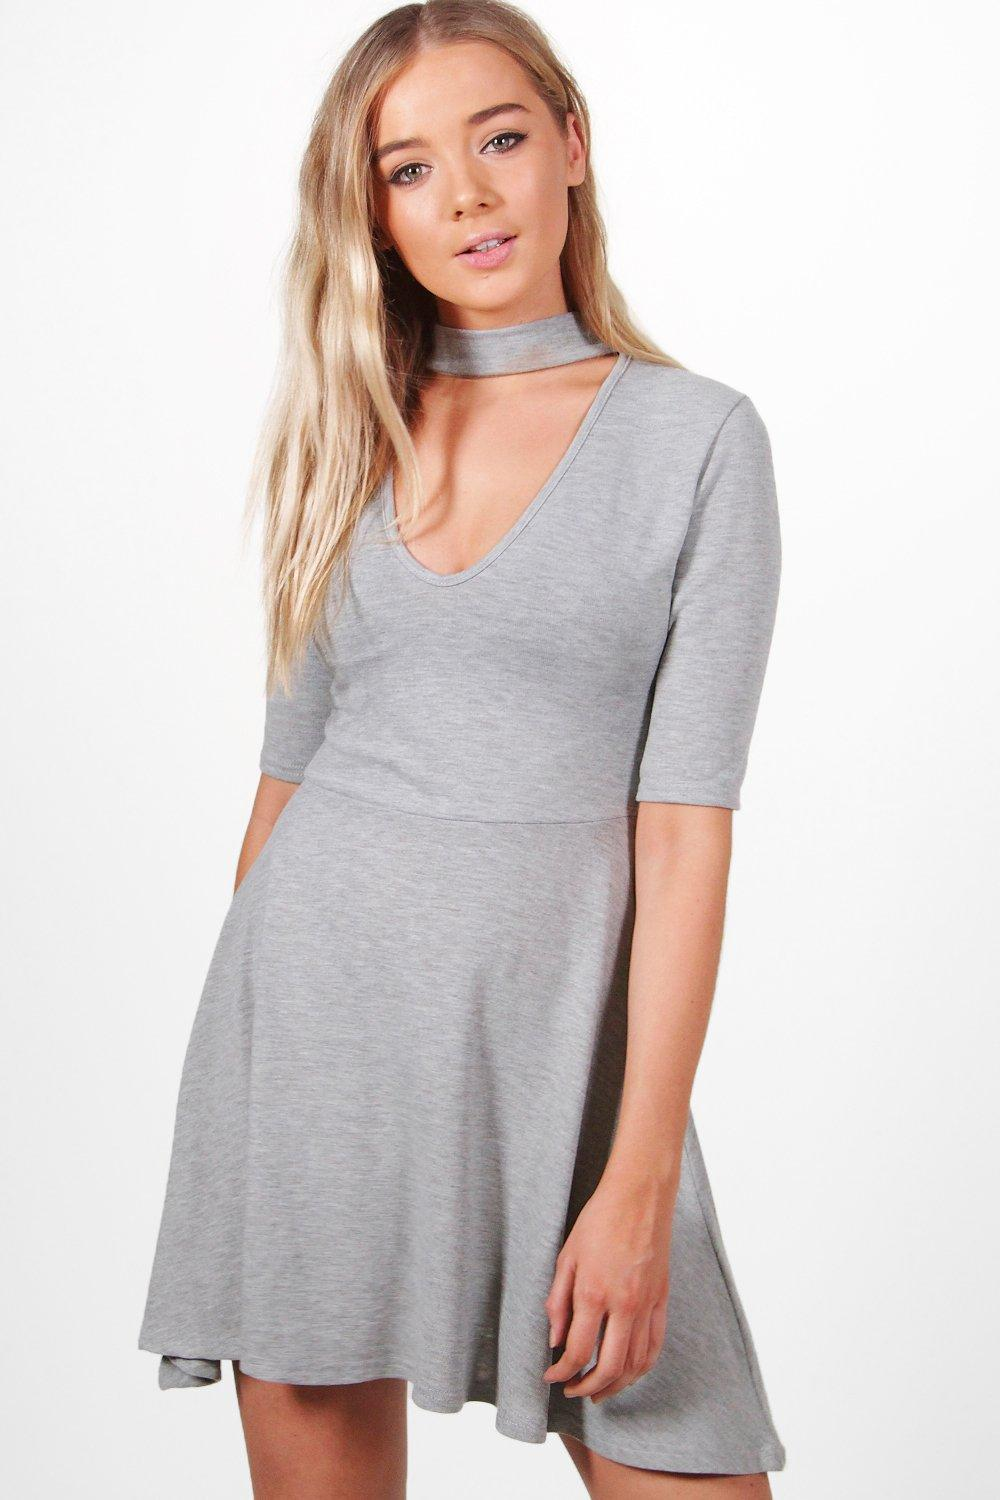 325bf58a12 Bella Choker Knitted Skater Dress. Hover to zoom